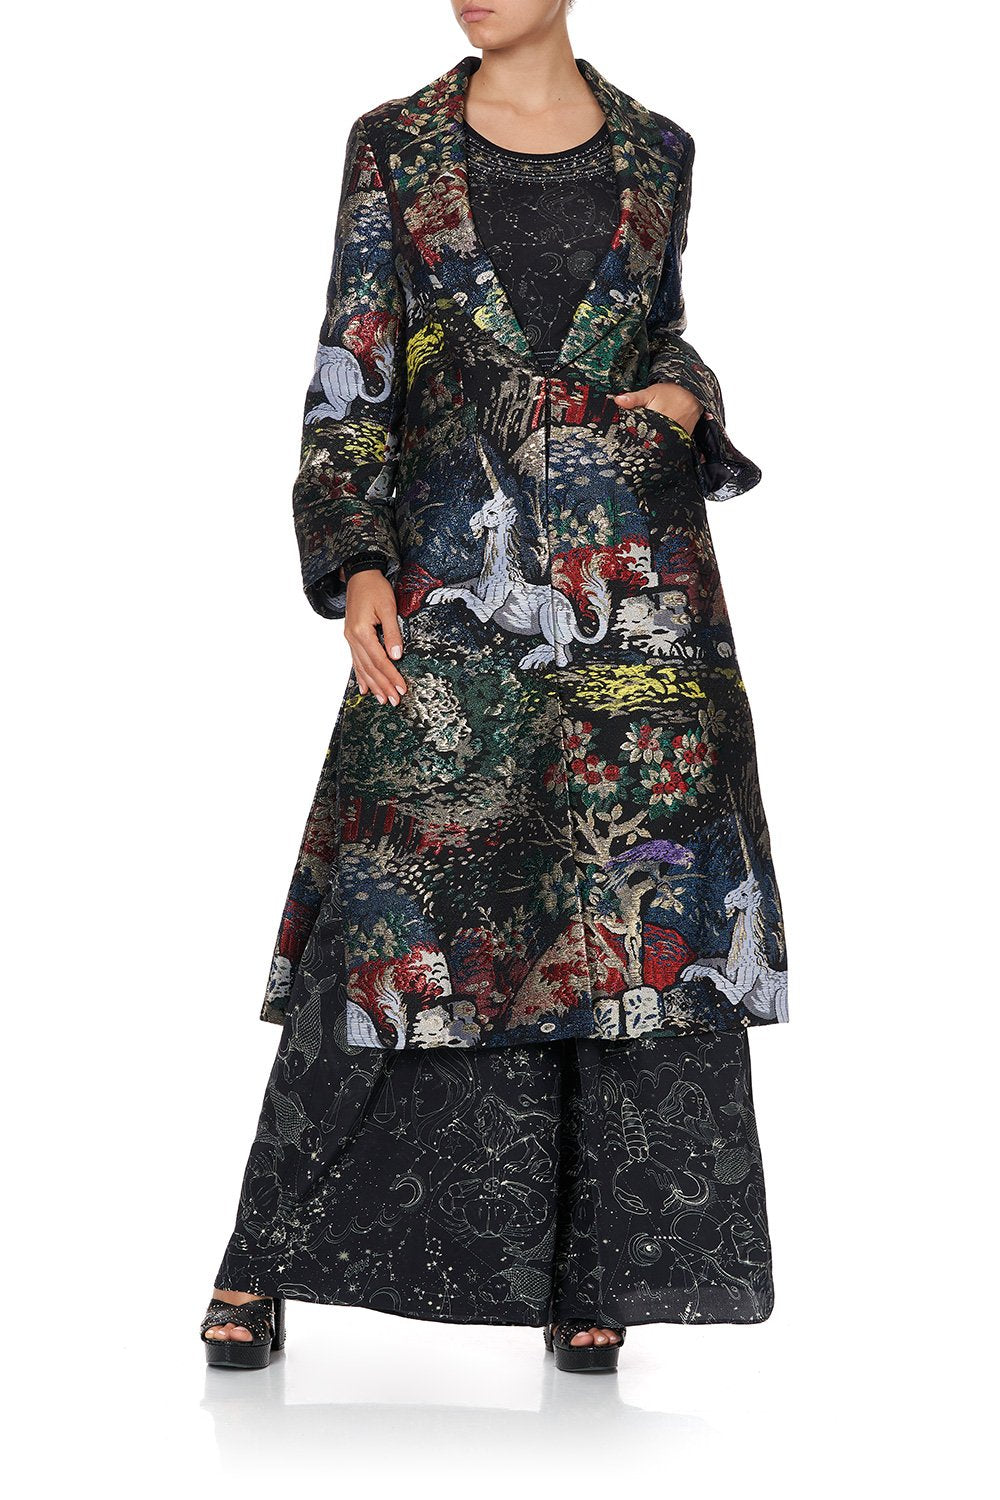 LONG JACKET WITH SIDE SPLITS MIDNIGHT MOON HOUSE